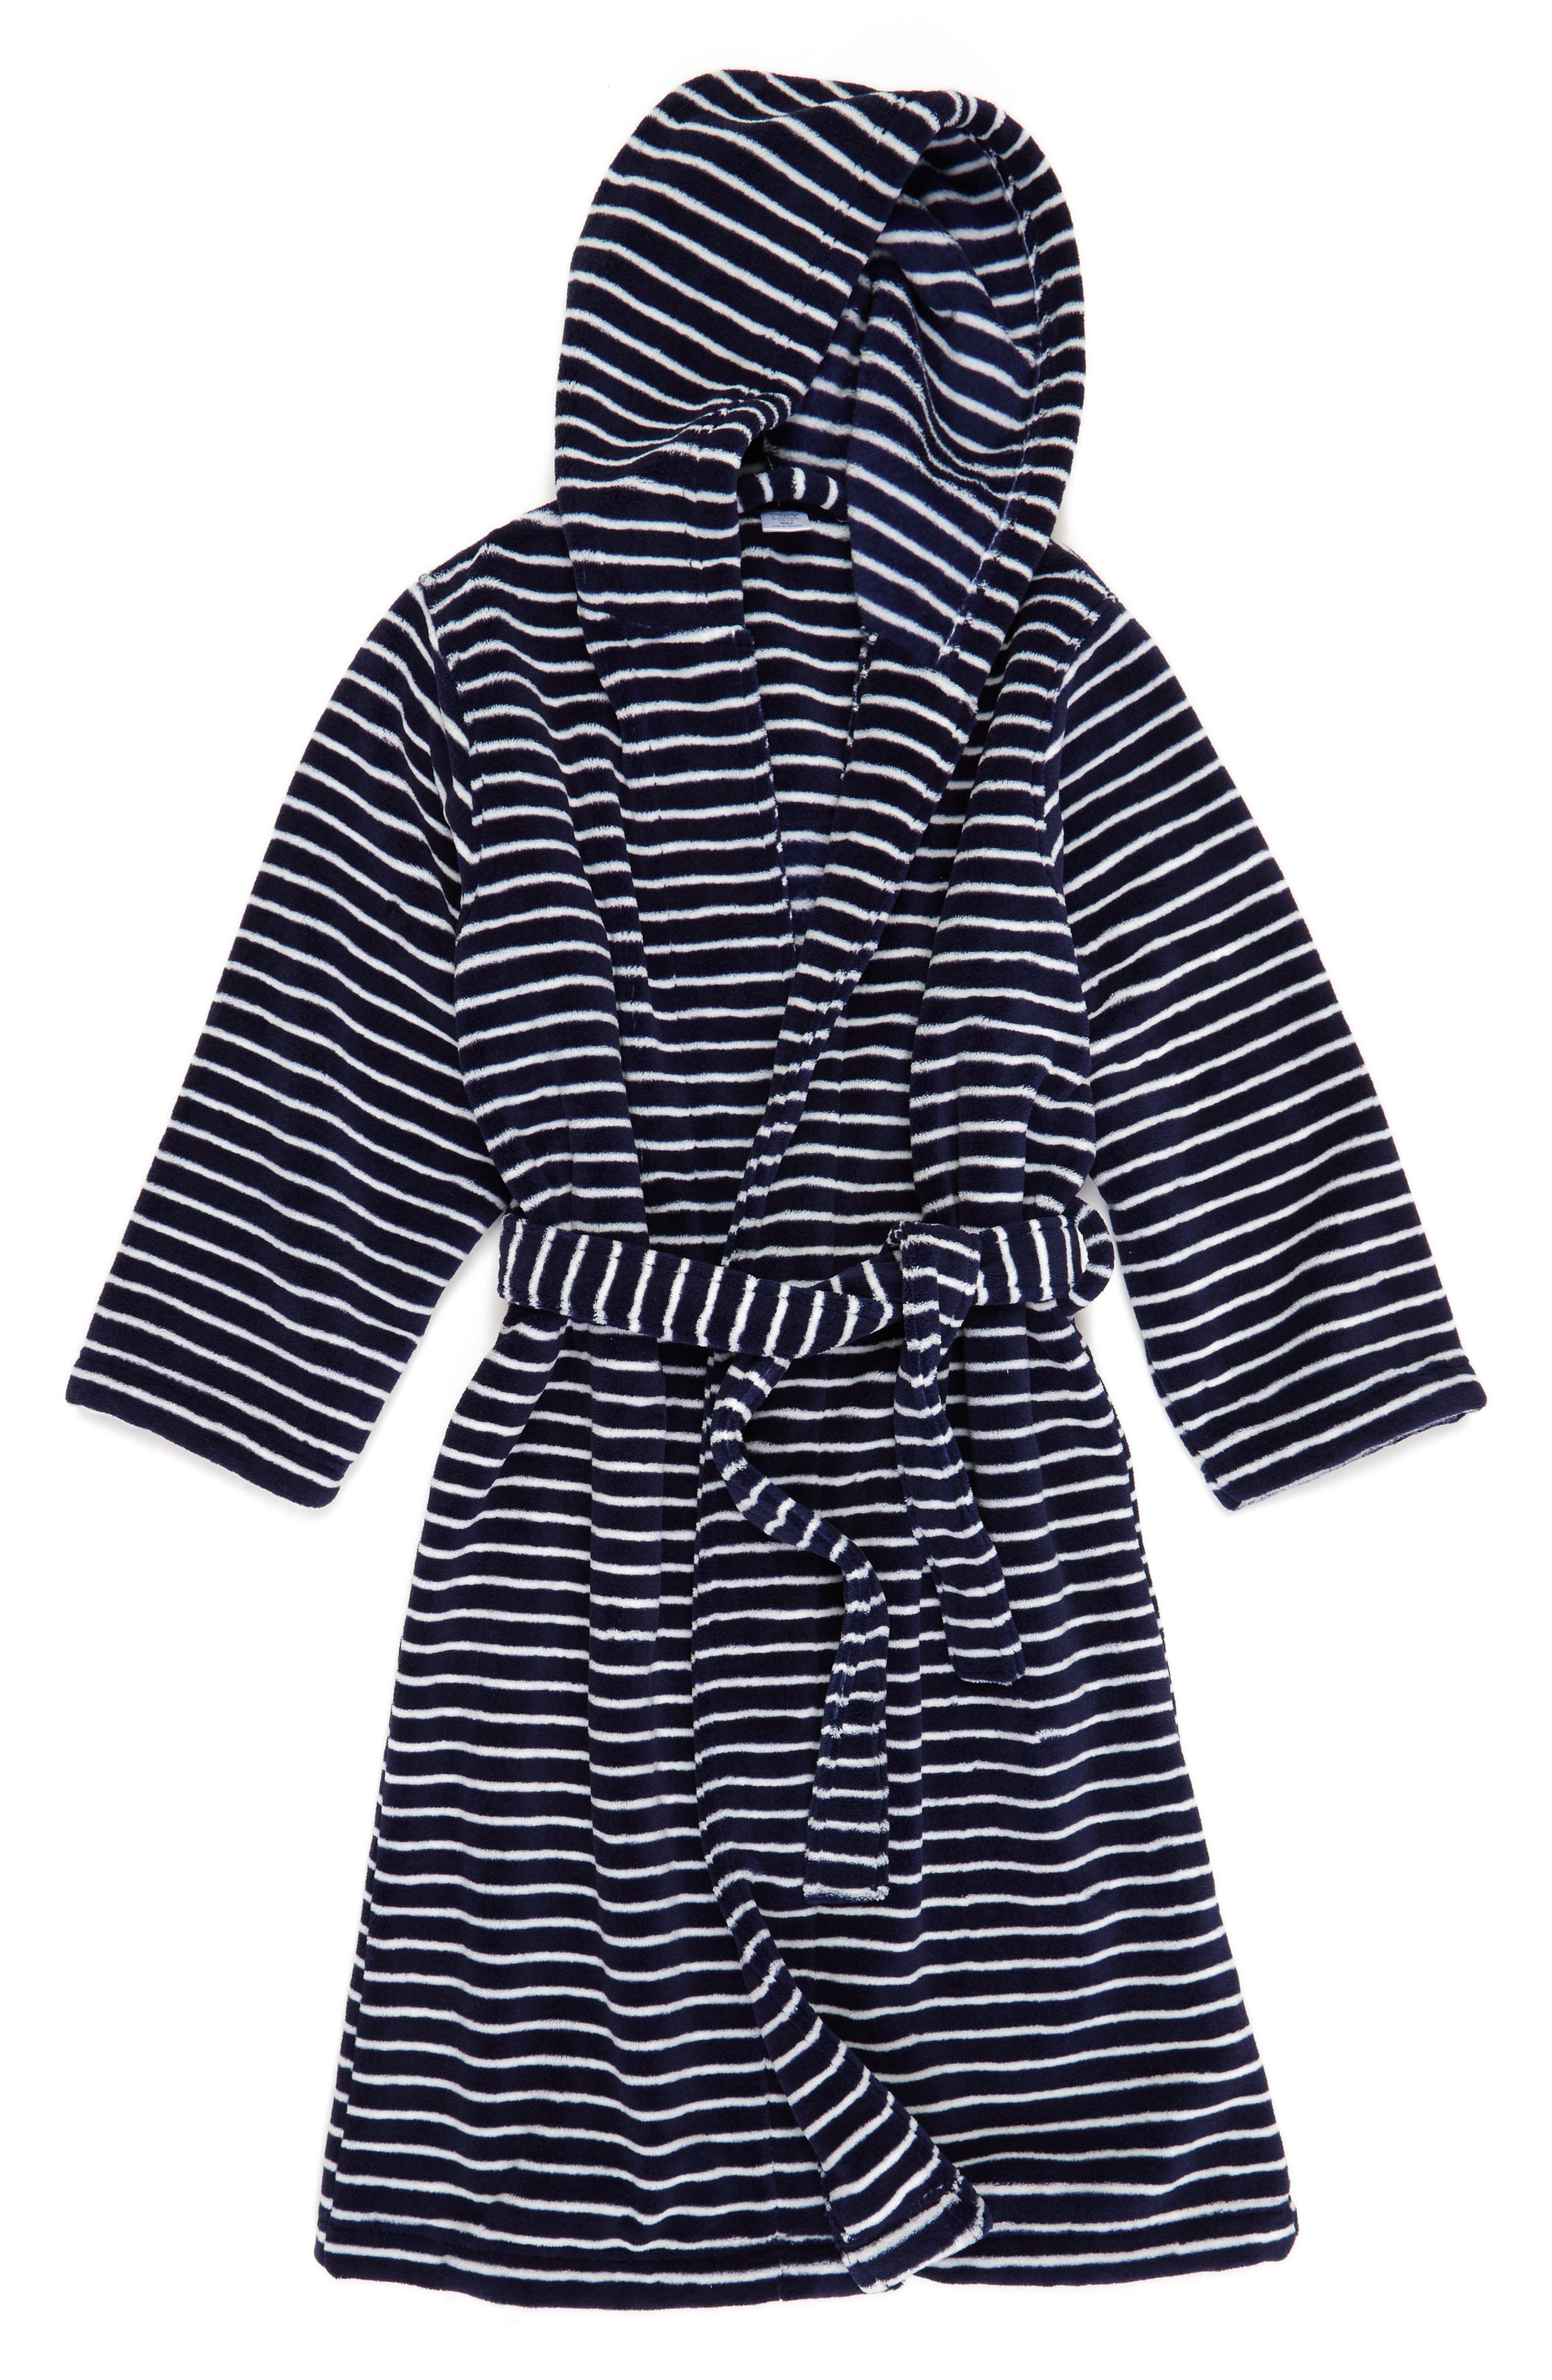 Tucker + Tate Hooded Plush Robe (Toddler, Little Kids & Big Kids)